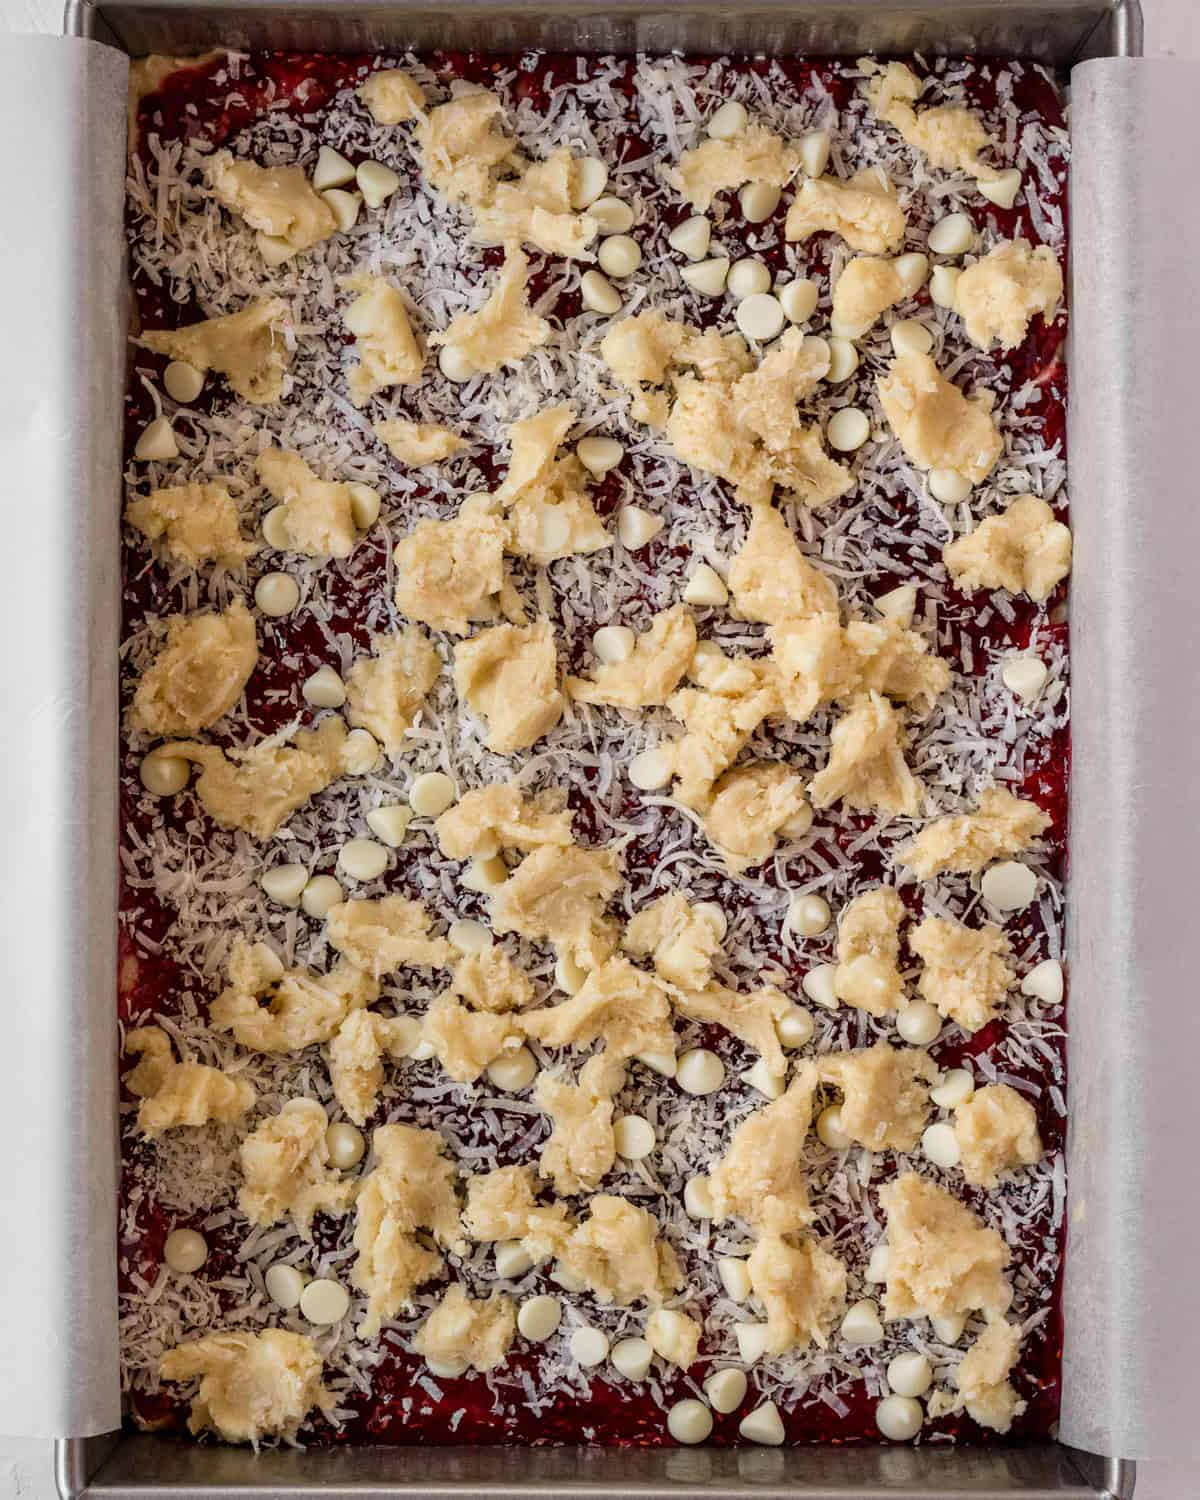 finished bars before baking in the oven with layers of raspberry, coconut, white chocolate, and more dough.